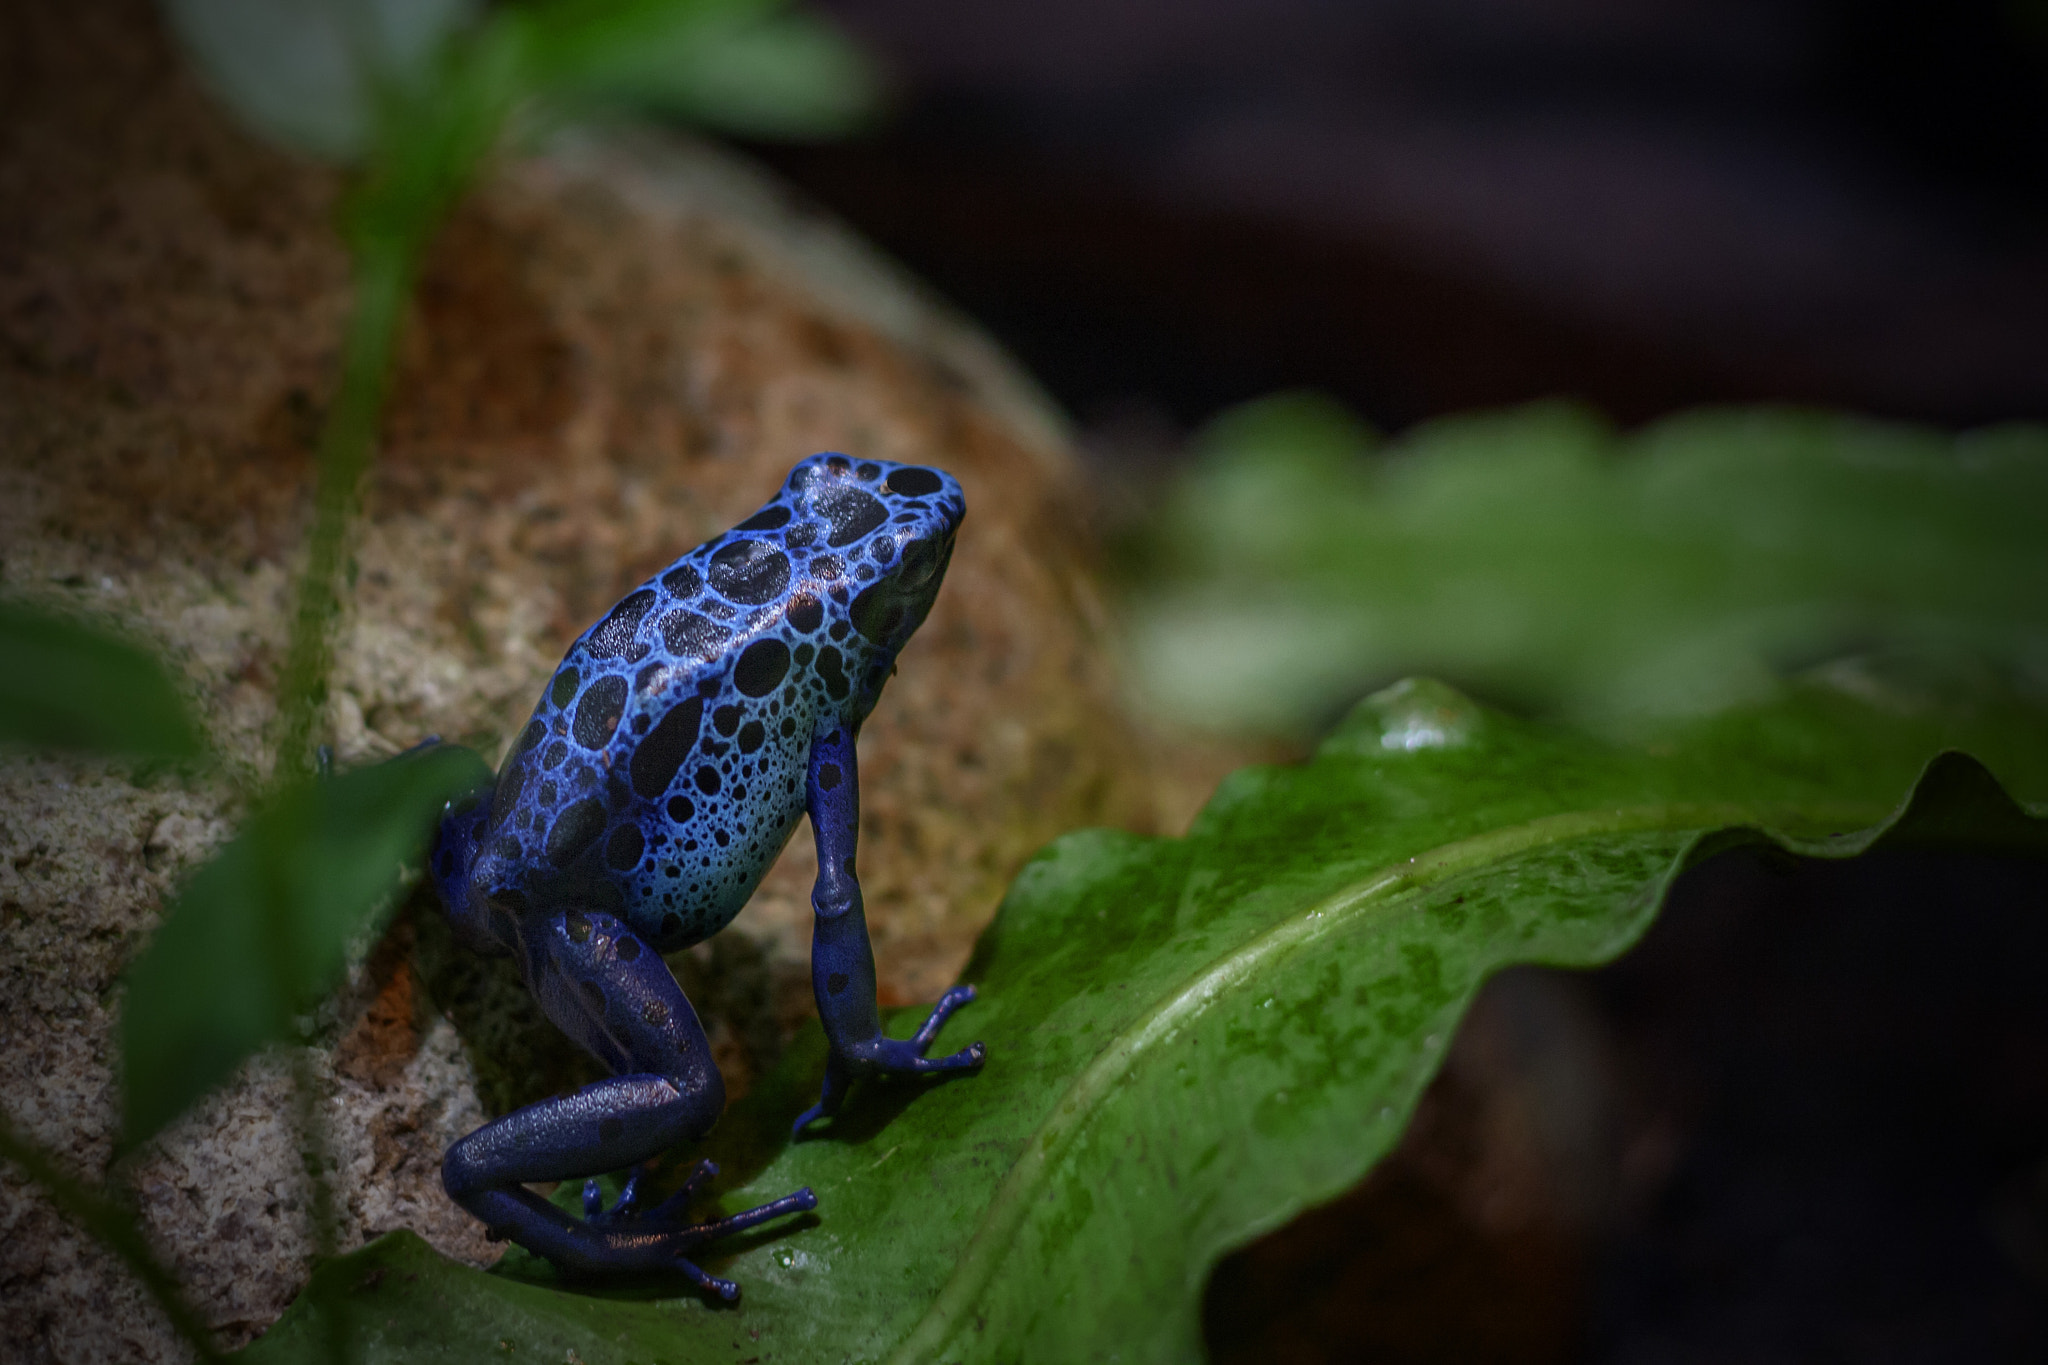 Photograph Blue Frog by Mirza Buljusmic on 500px